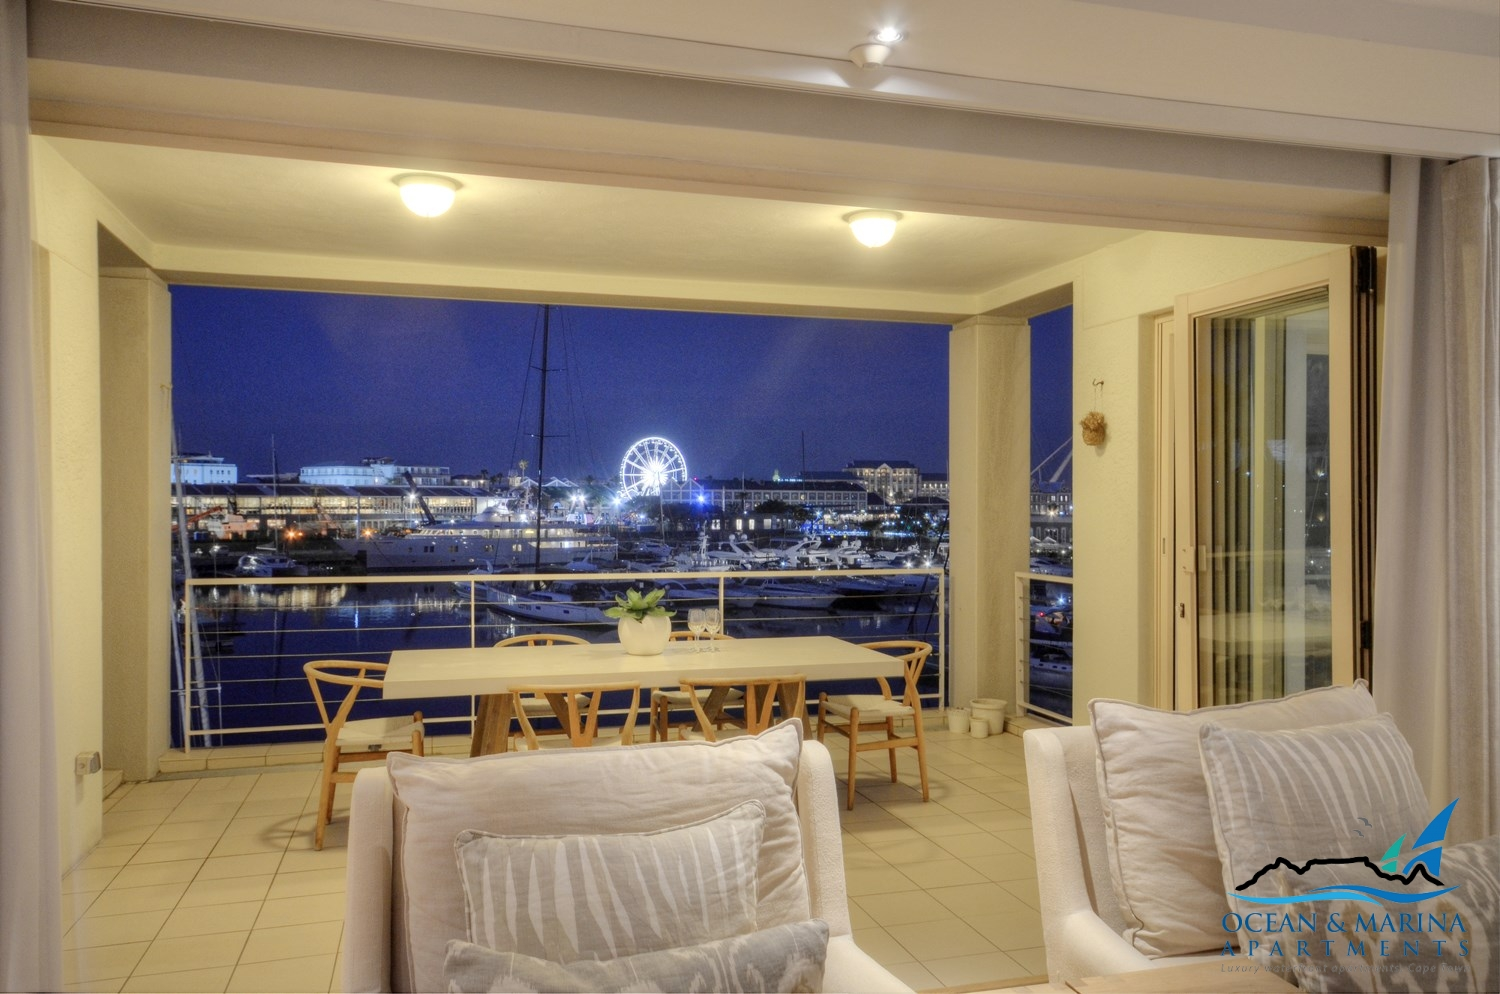 Penrith Apartment living area with a nighttime waterfront & marina view.